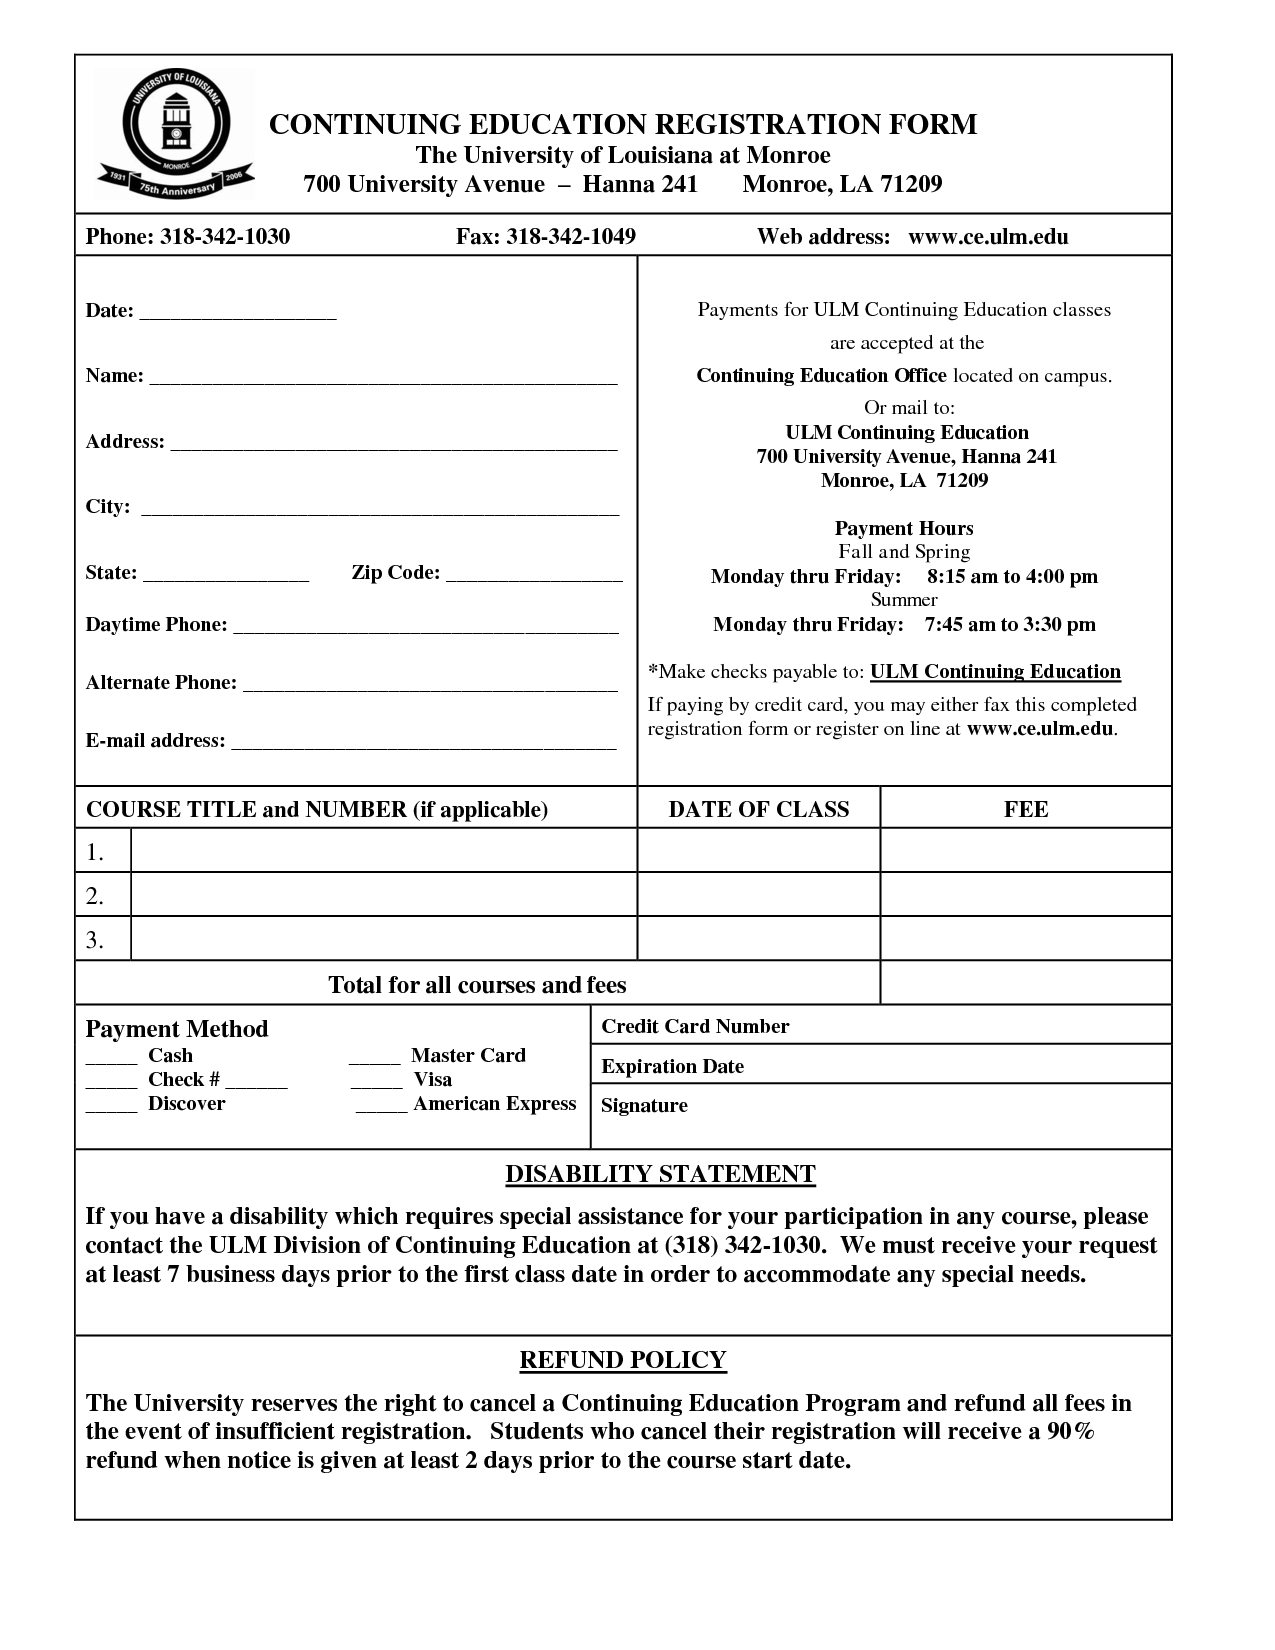 registration forms template free   Boat.jeremyeaton.co